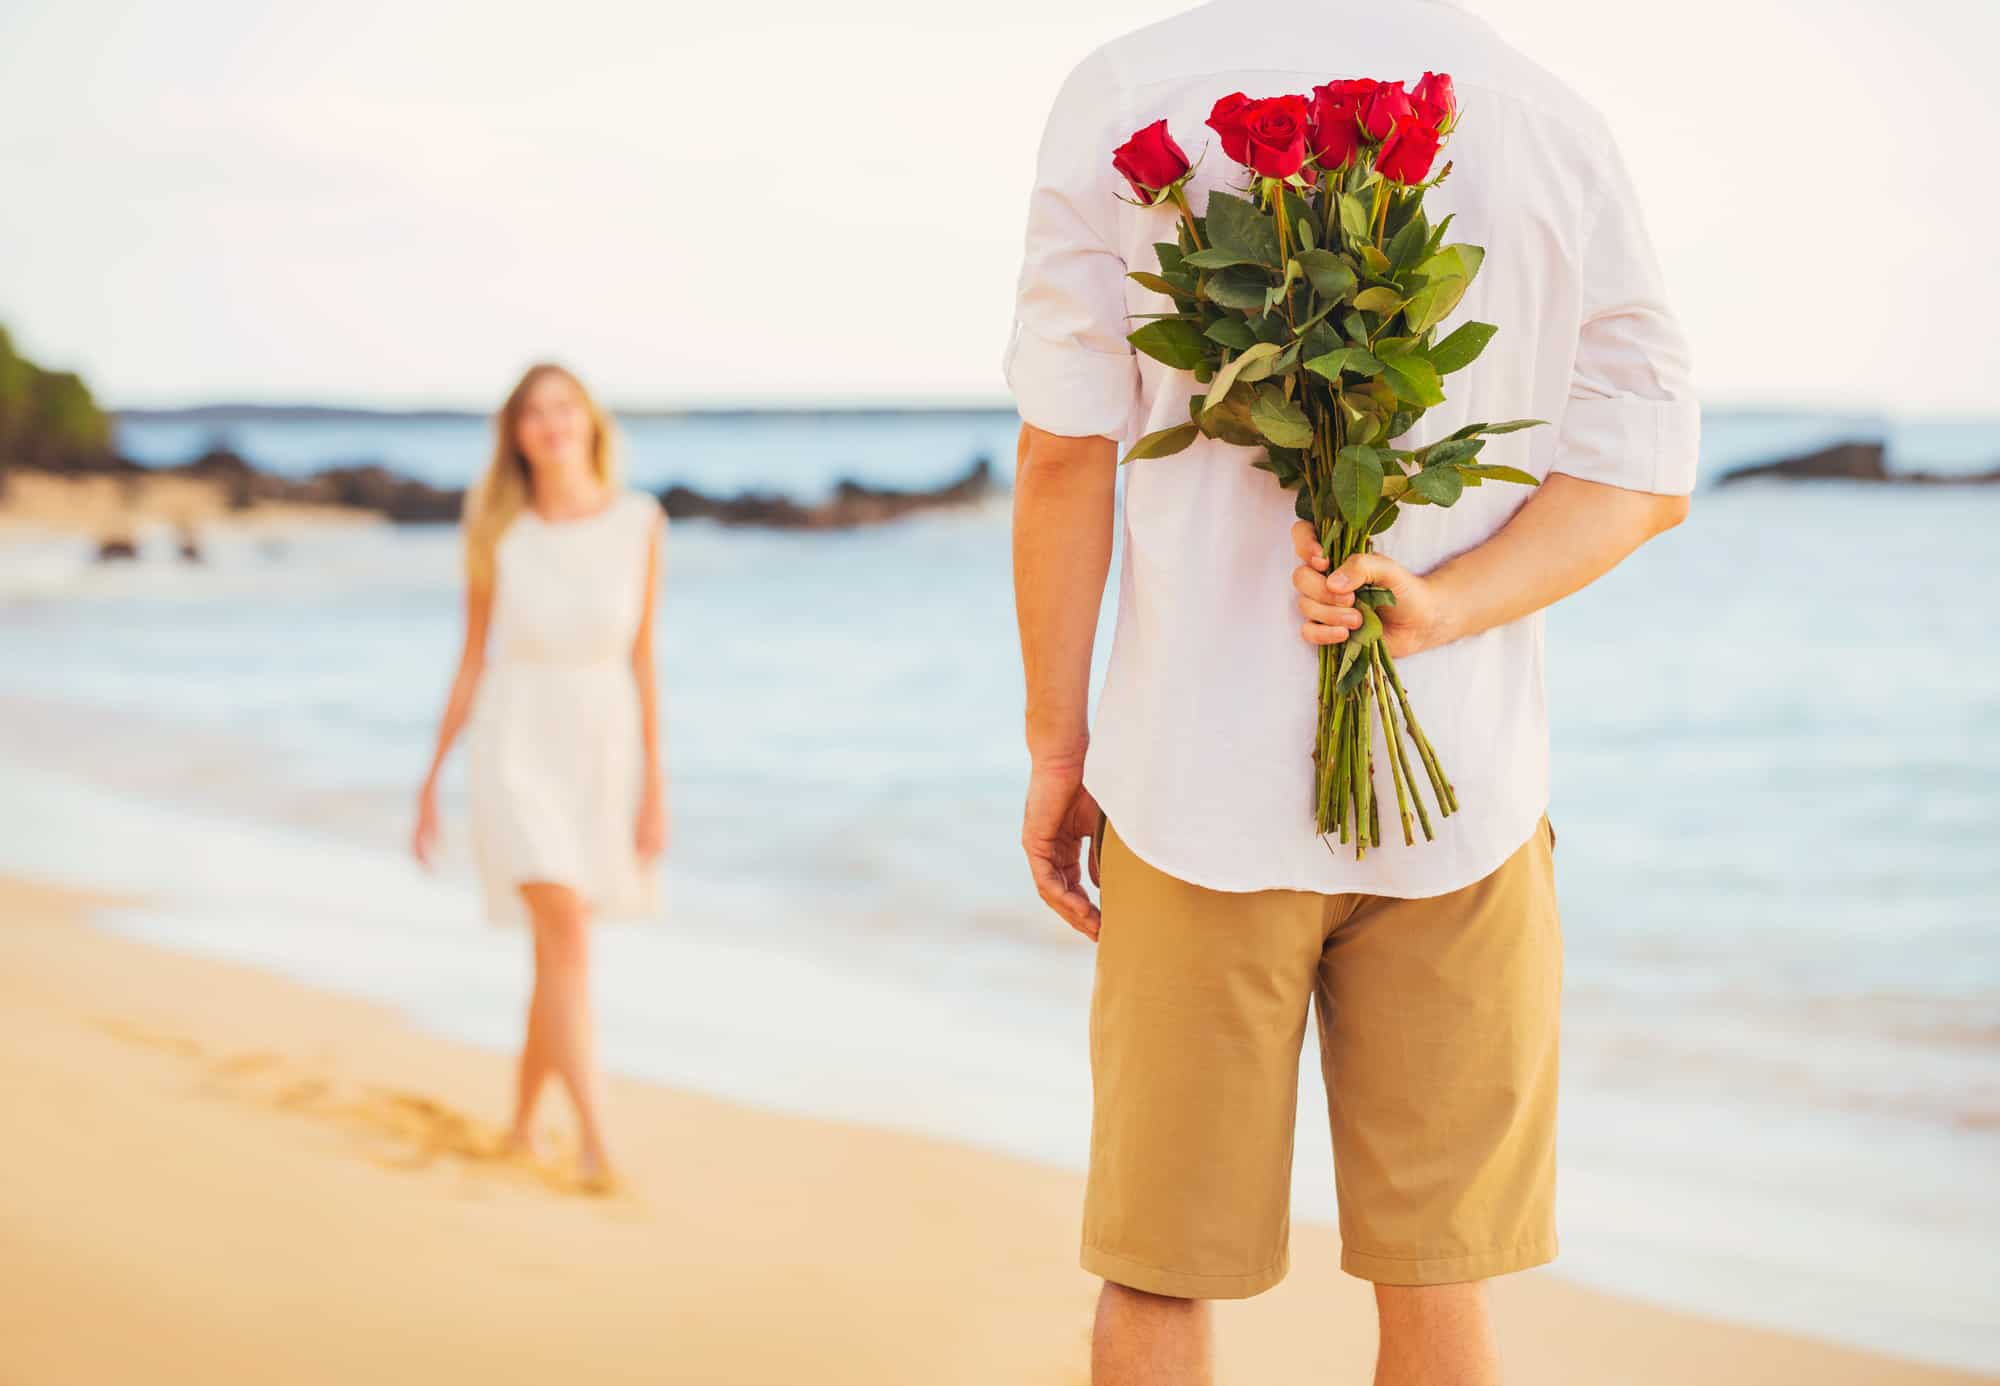 How To Recover From Saying I Love You Too Soon (5 Tips) - AskApril